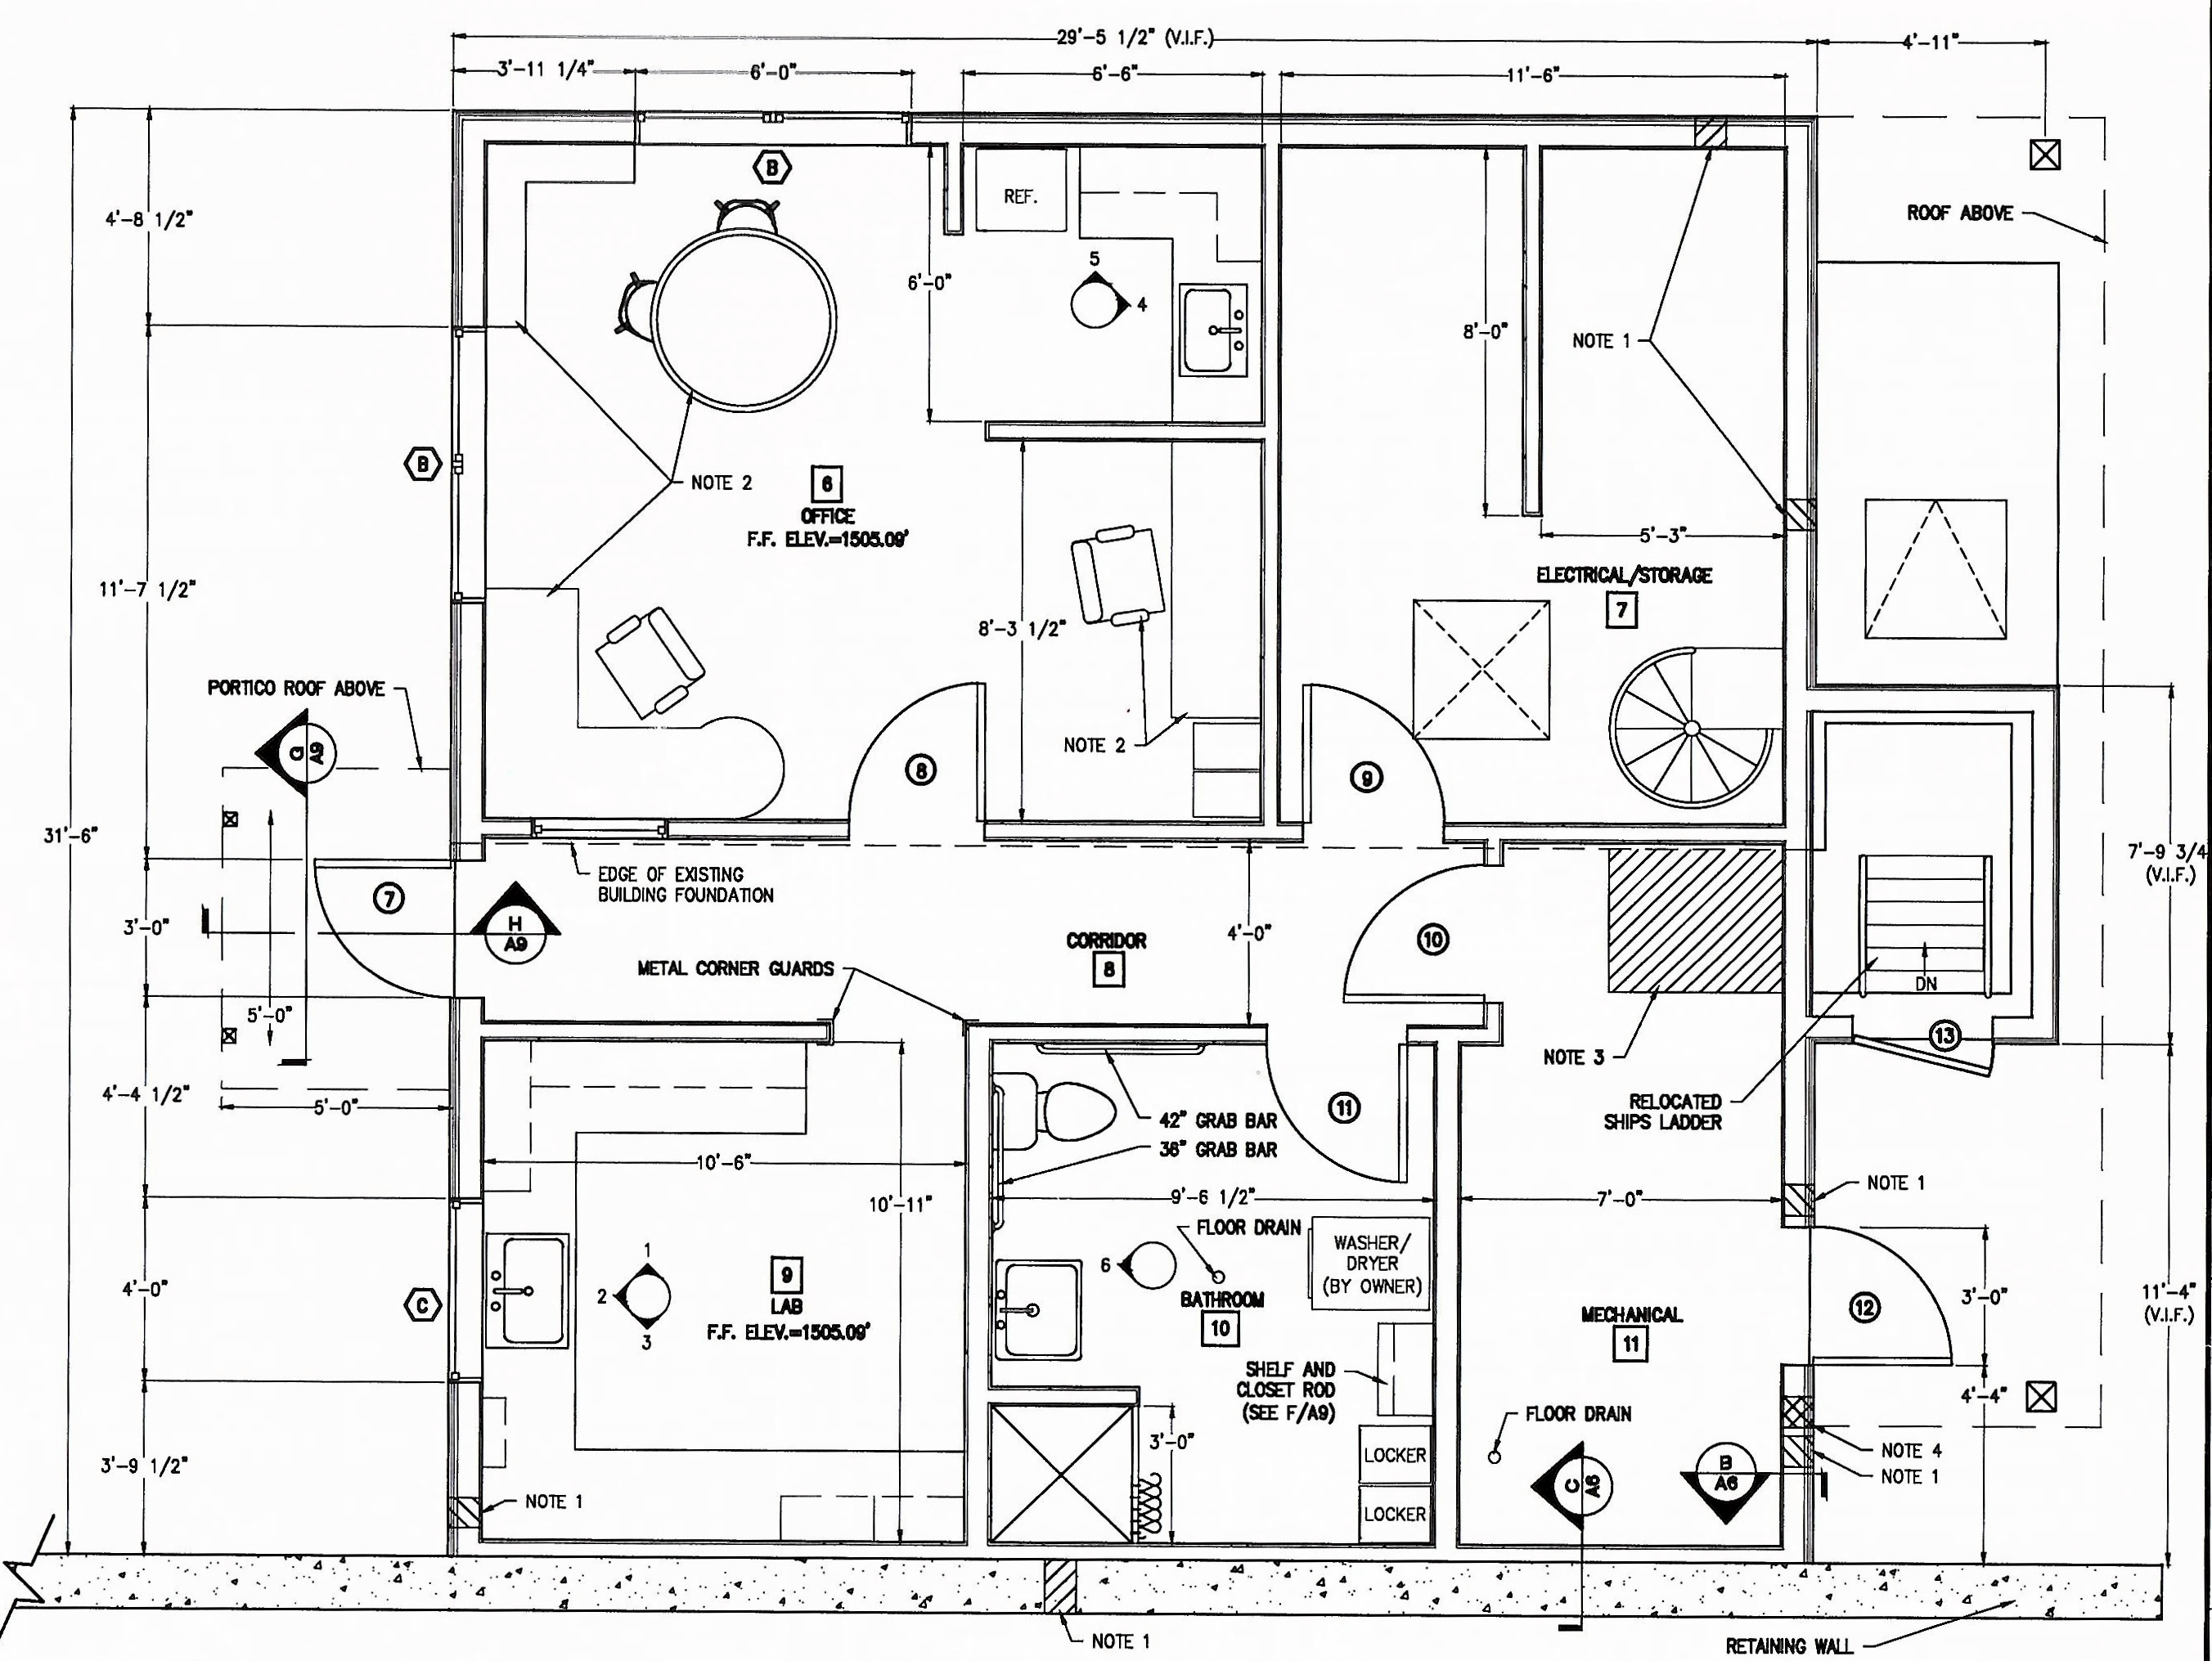 Wilmington Wastewater Facility Refurbishment Project John Deere Belt Diagram 8 10 From 7 Votes 9 Office Lab Building